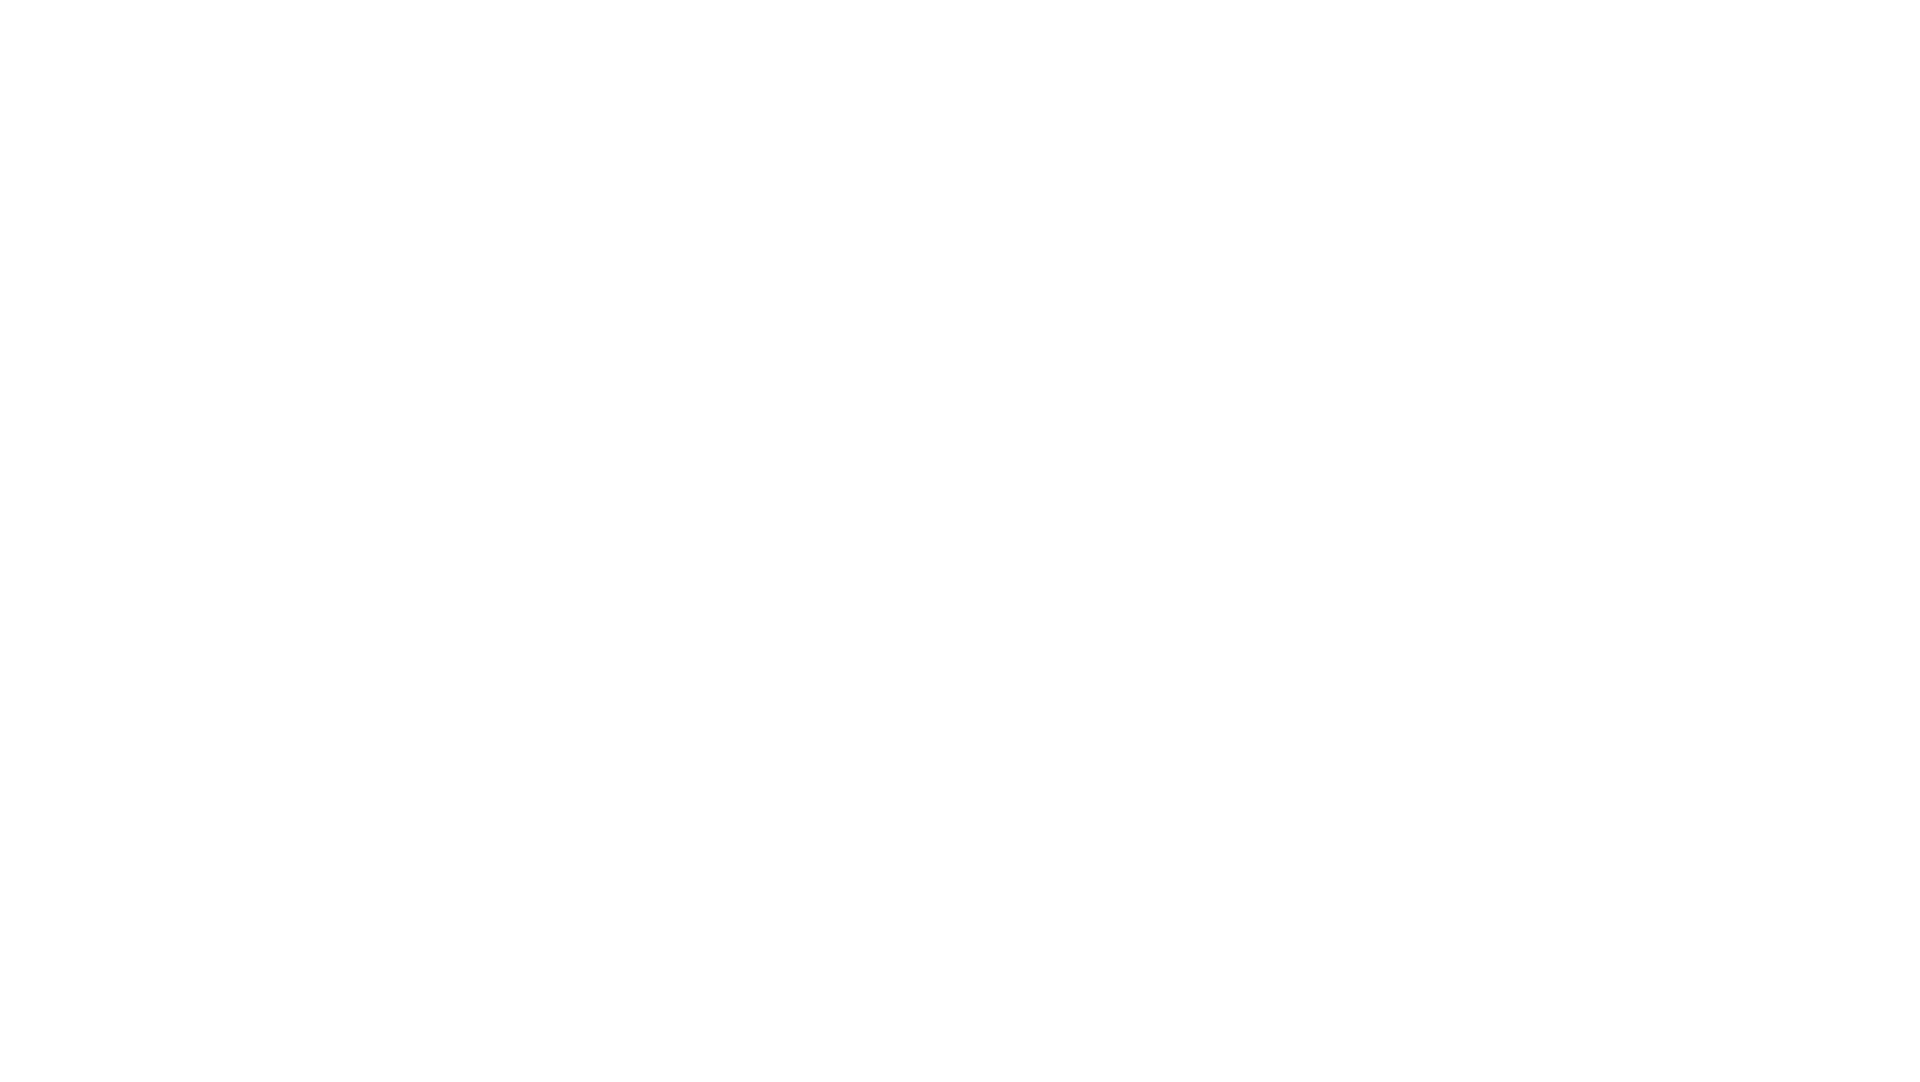 WARM Productions